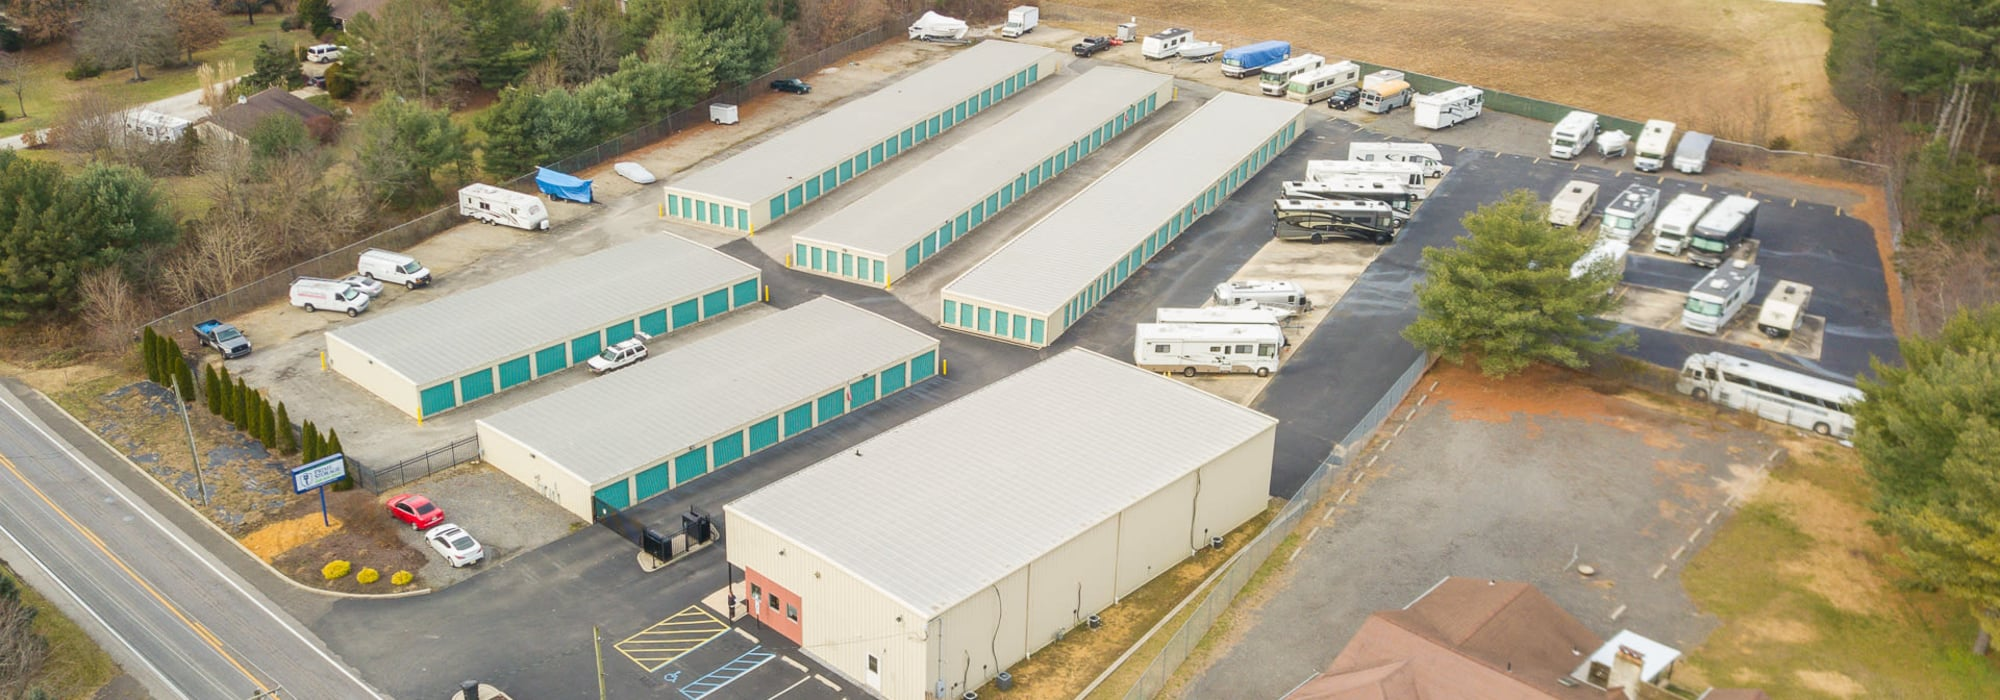 Prime Storage in Glassboro, NJ